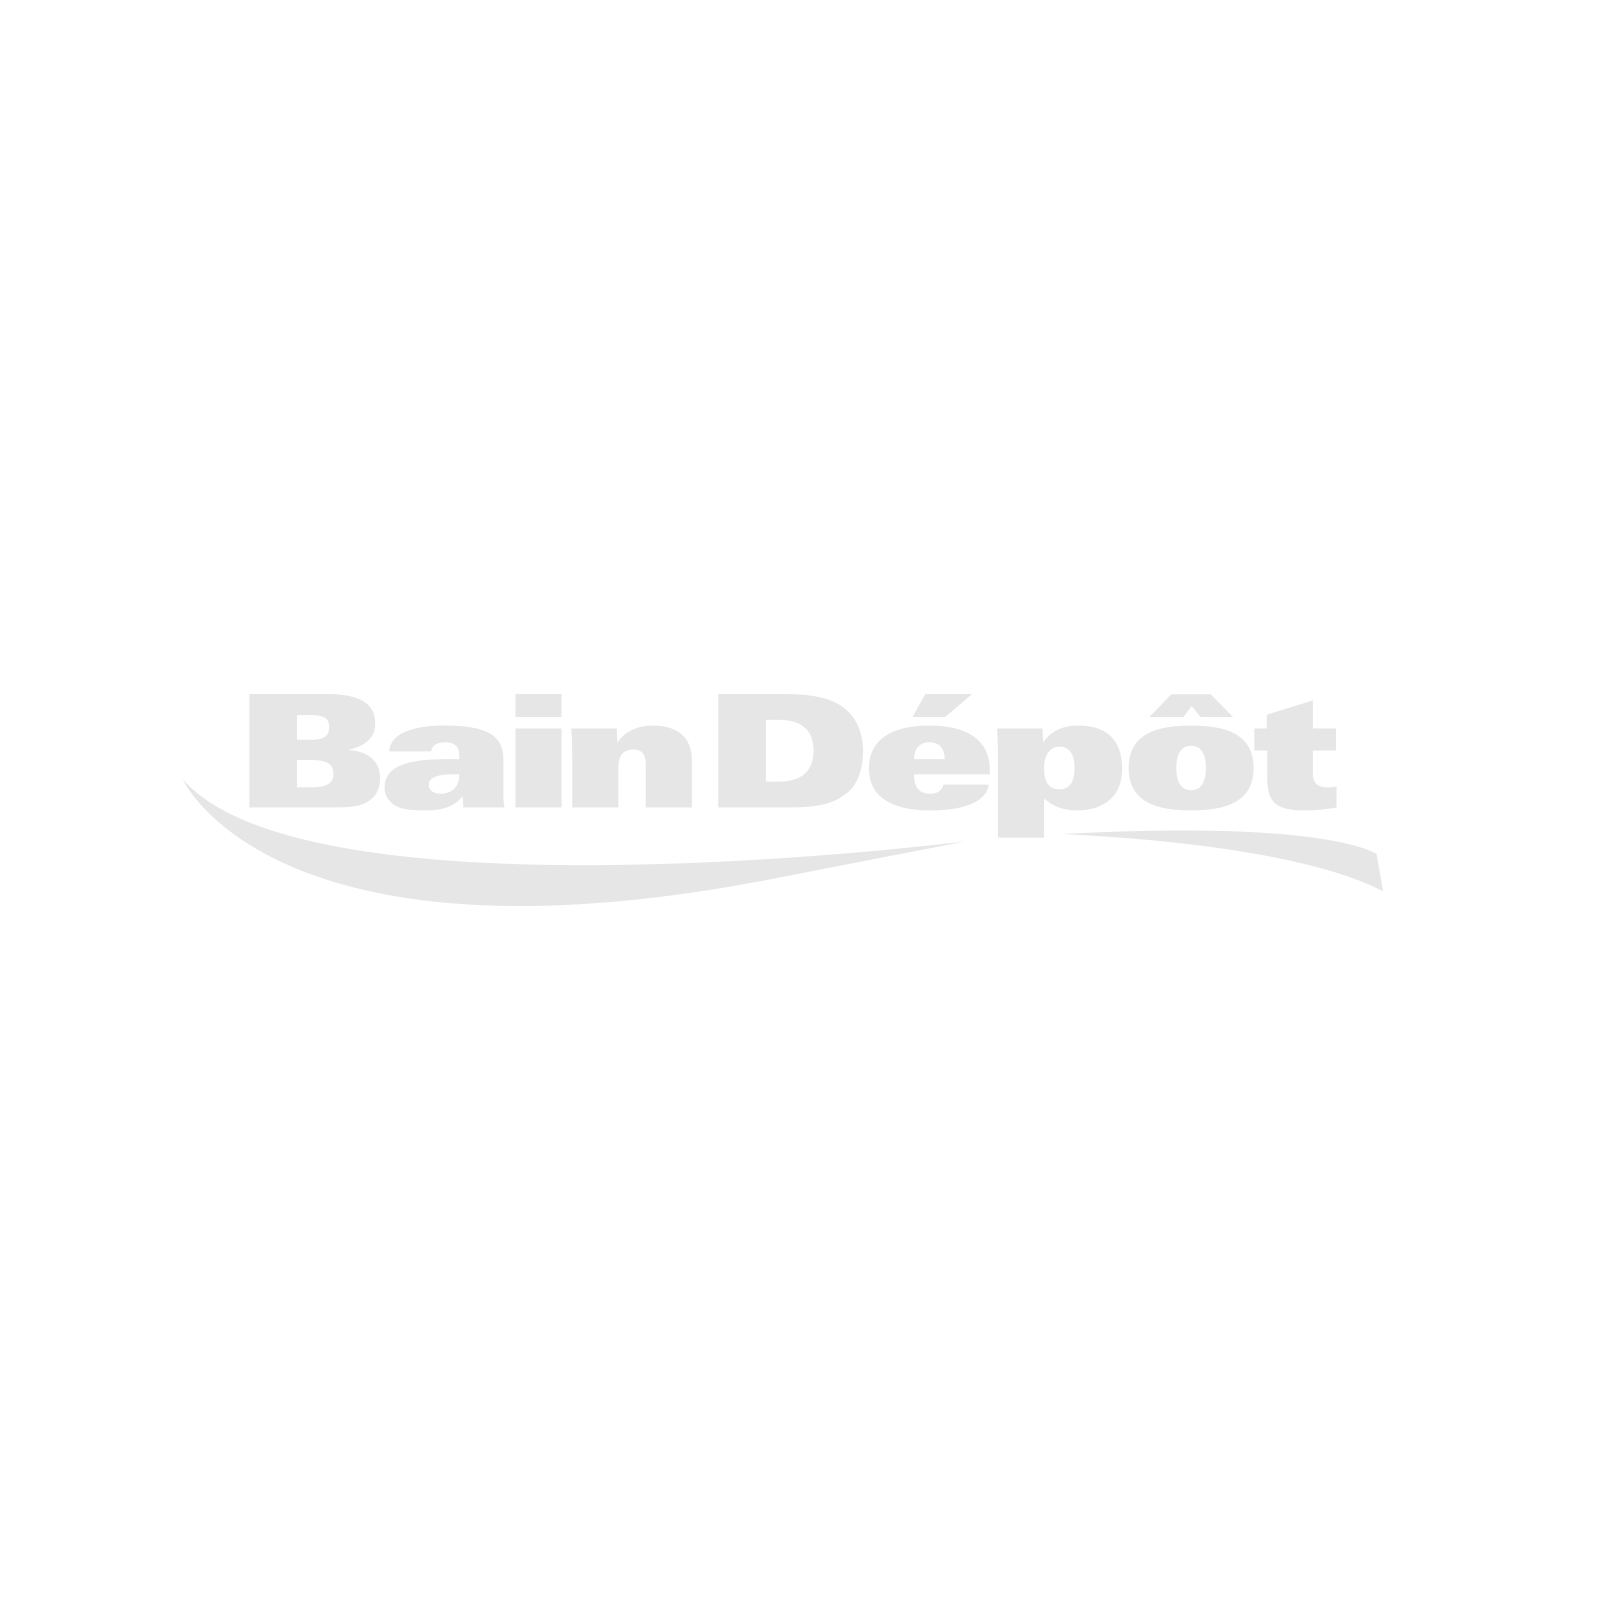 "Frosted kitchen cabinet door 14 3/4"" x 29 3/4"" x 5/8''"